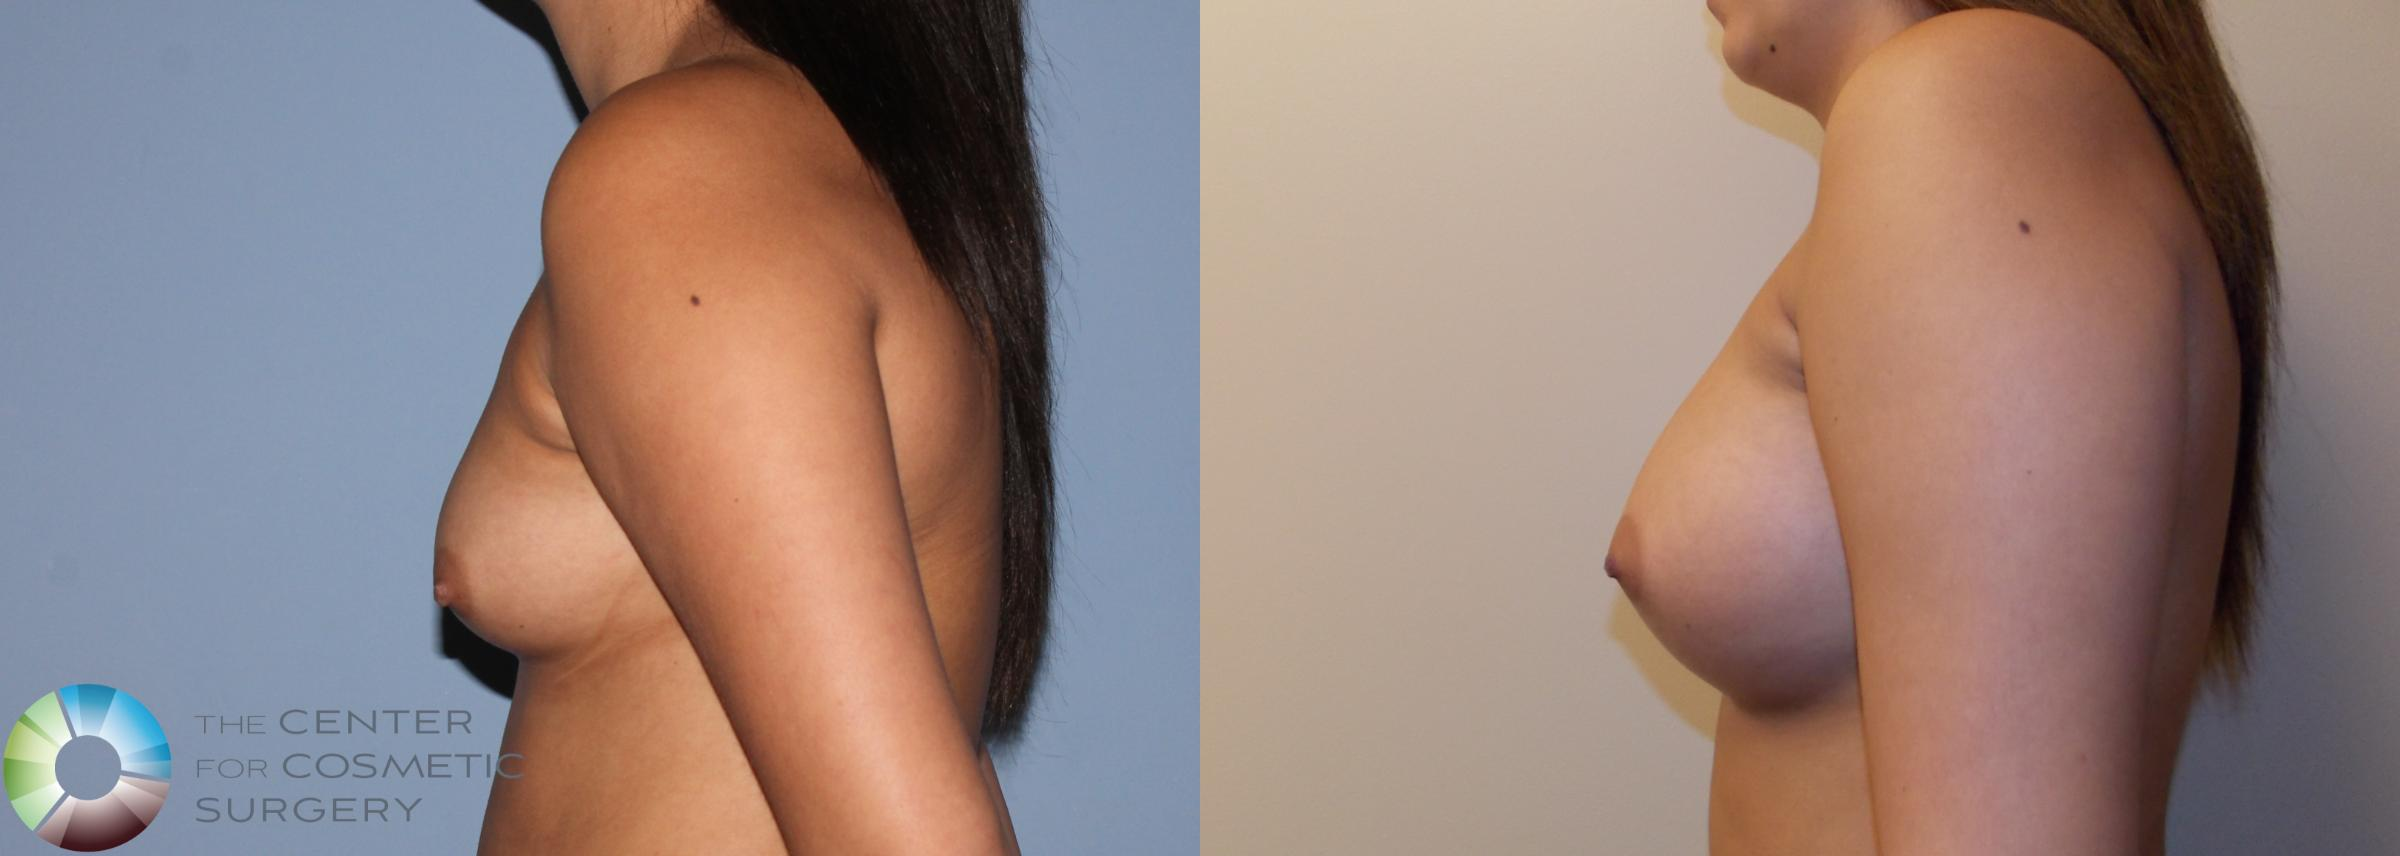 Breast Augmentation Case 754 Before & After View #3 | Golden, CO | The Center for Cosmetic Surgery